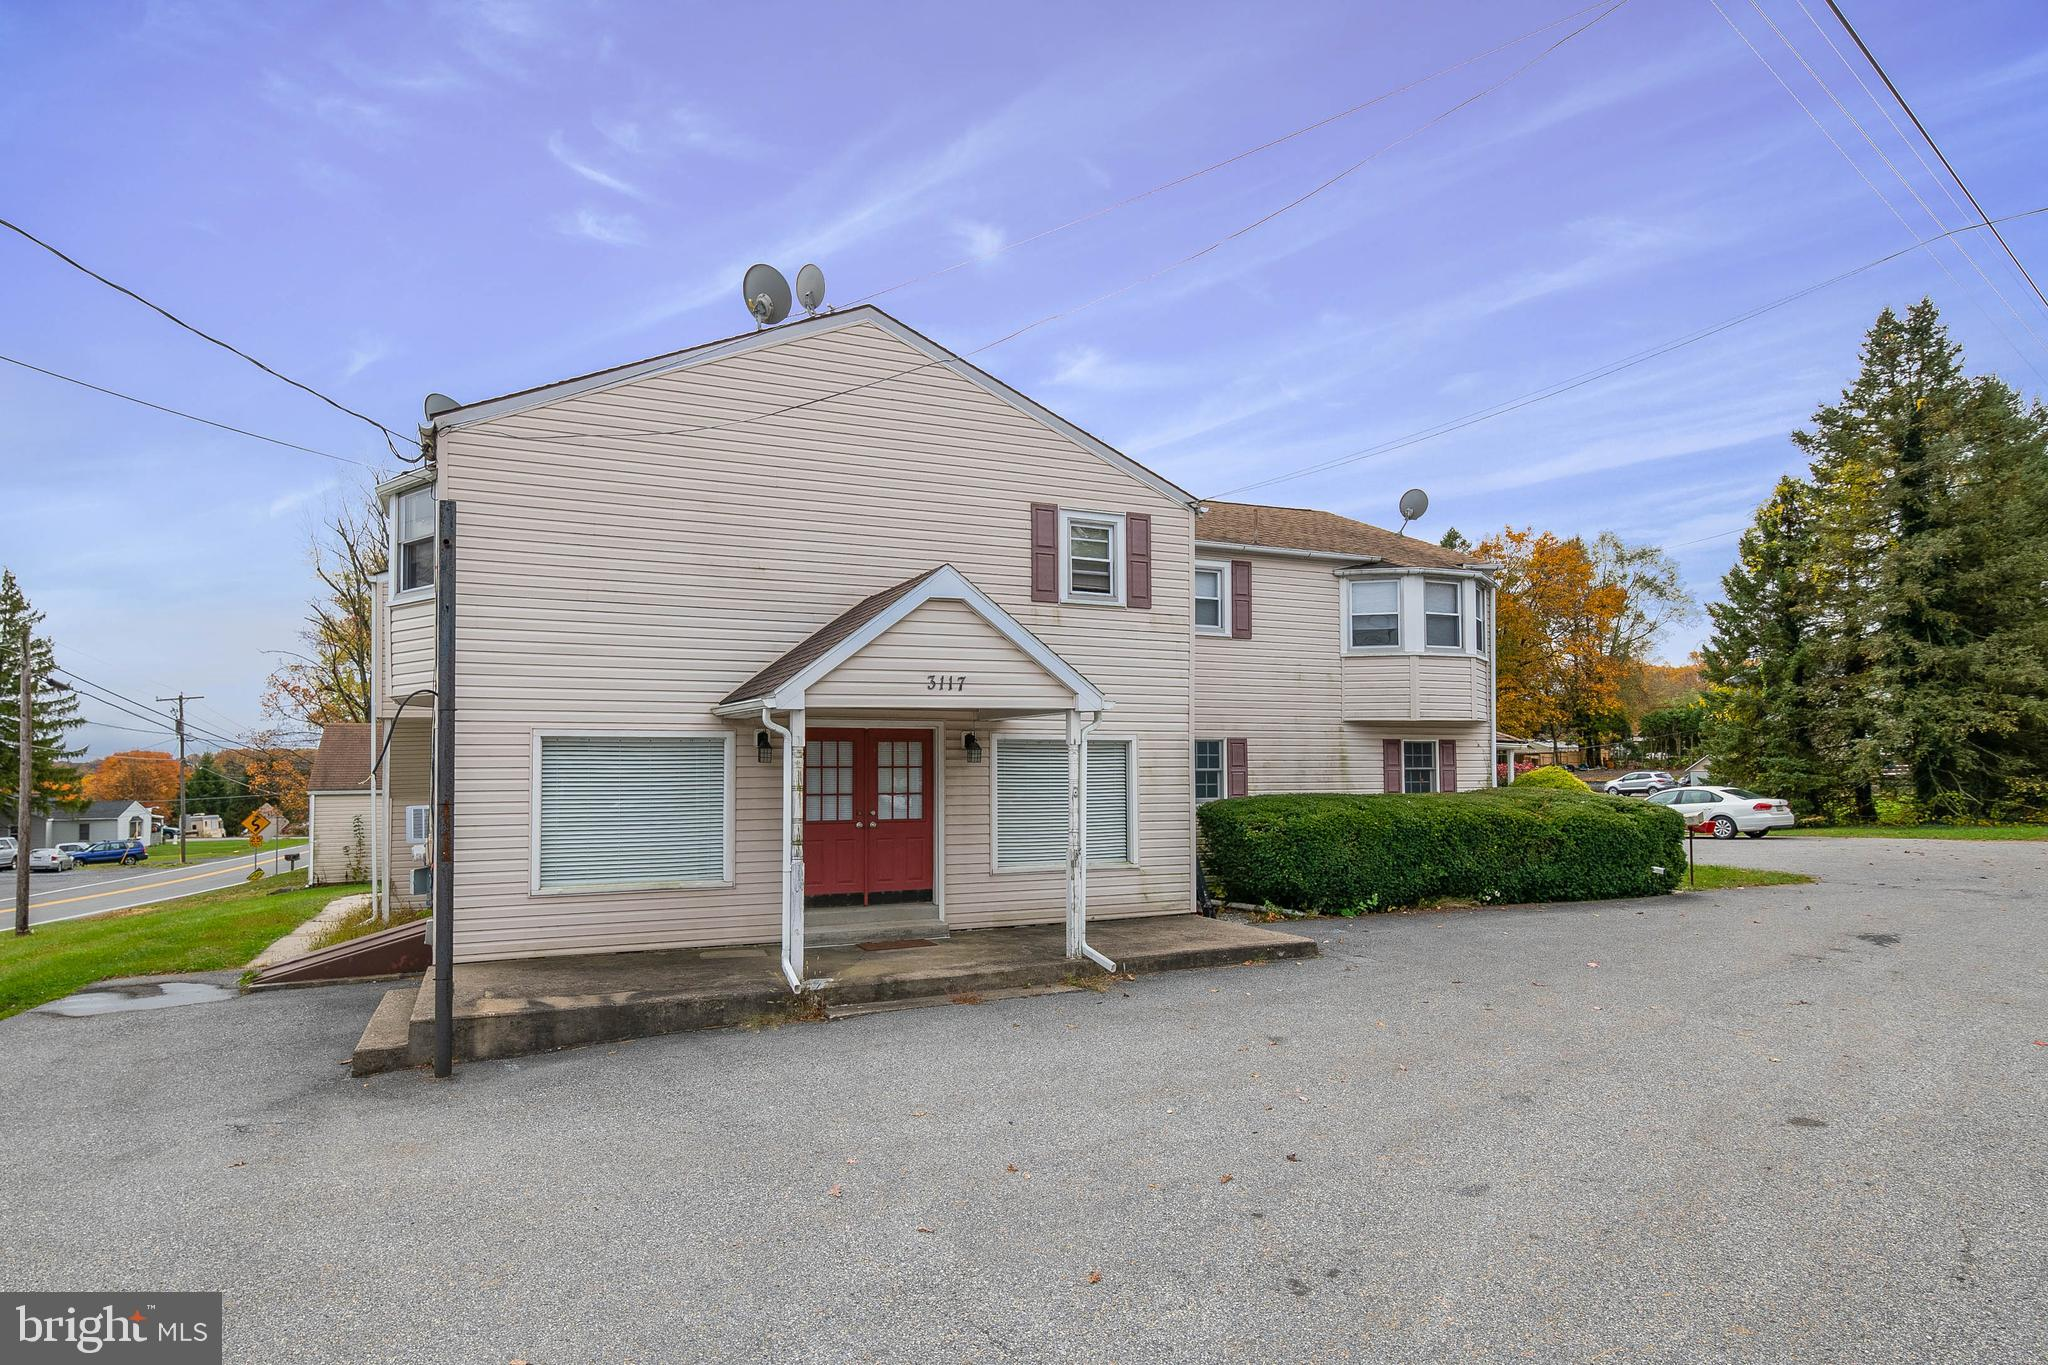 3117 PRICETOWN ROAD, TEMPLE, PA 19560